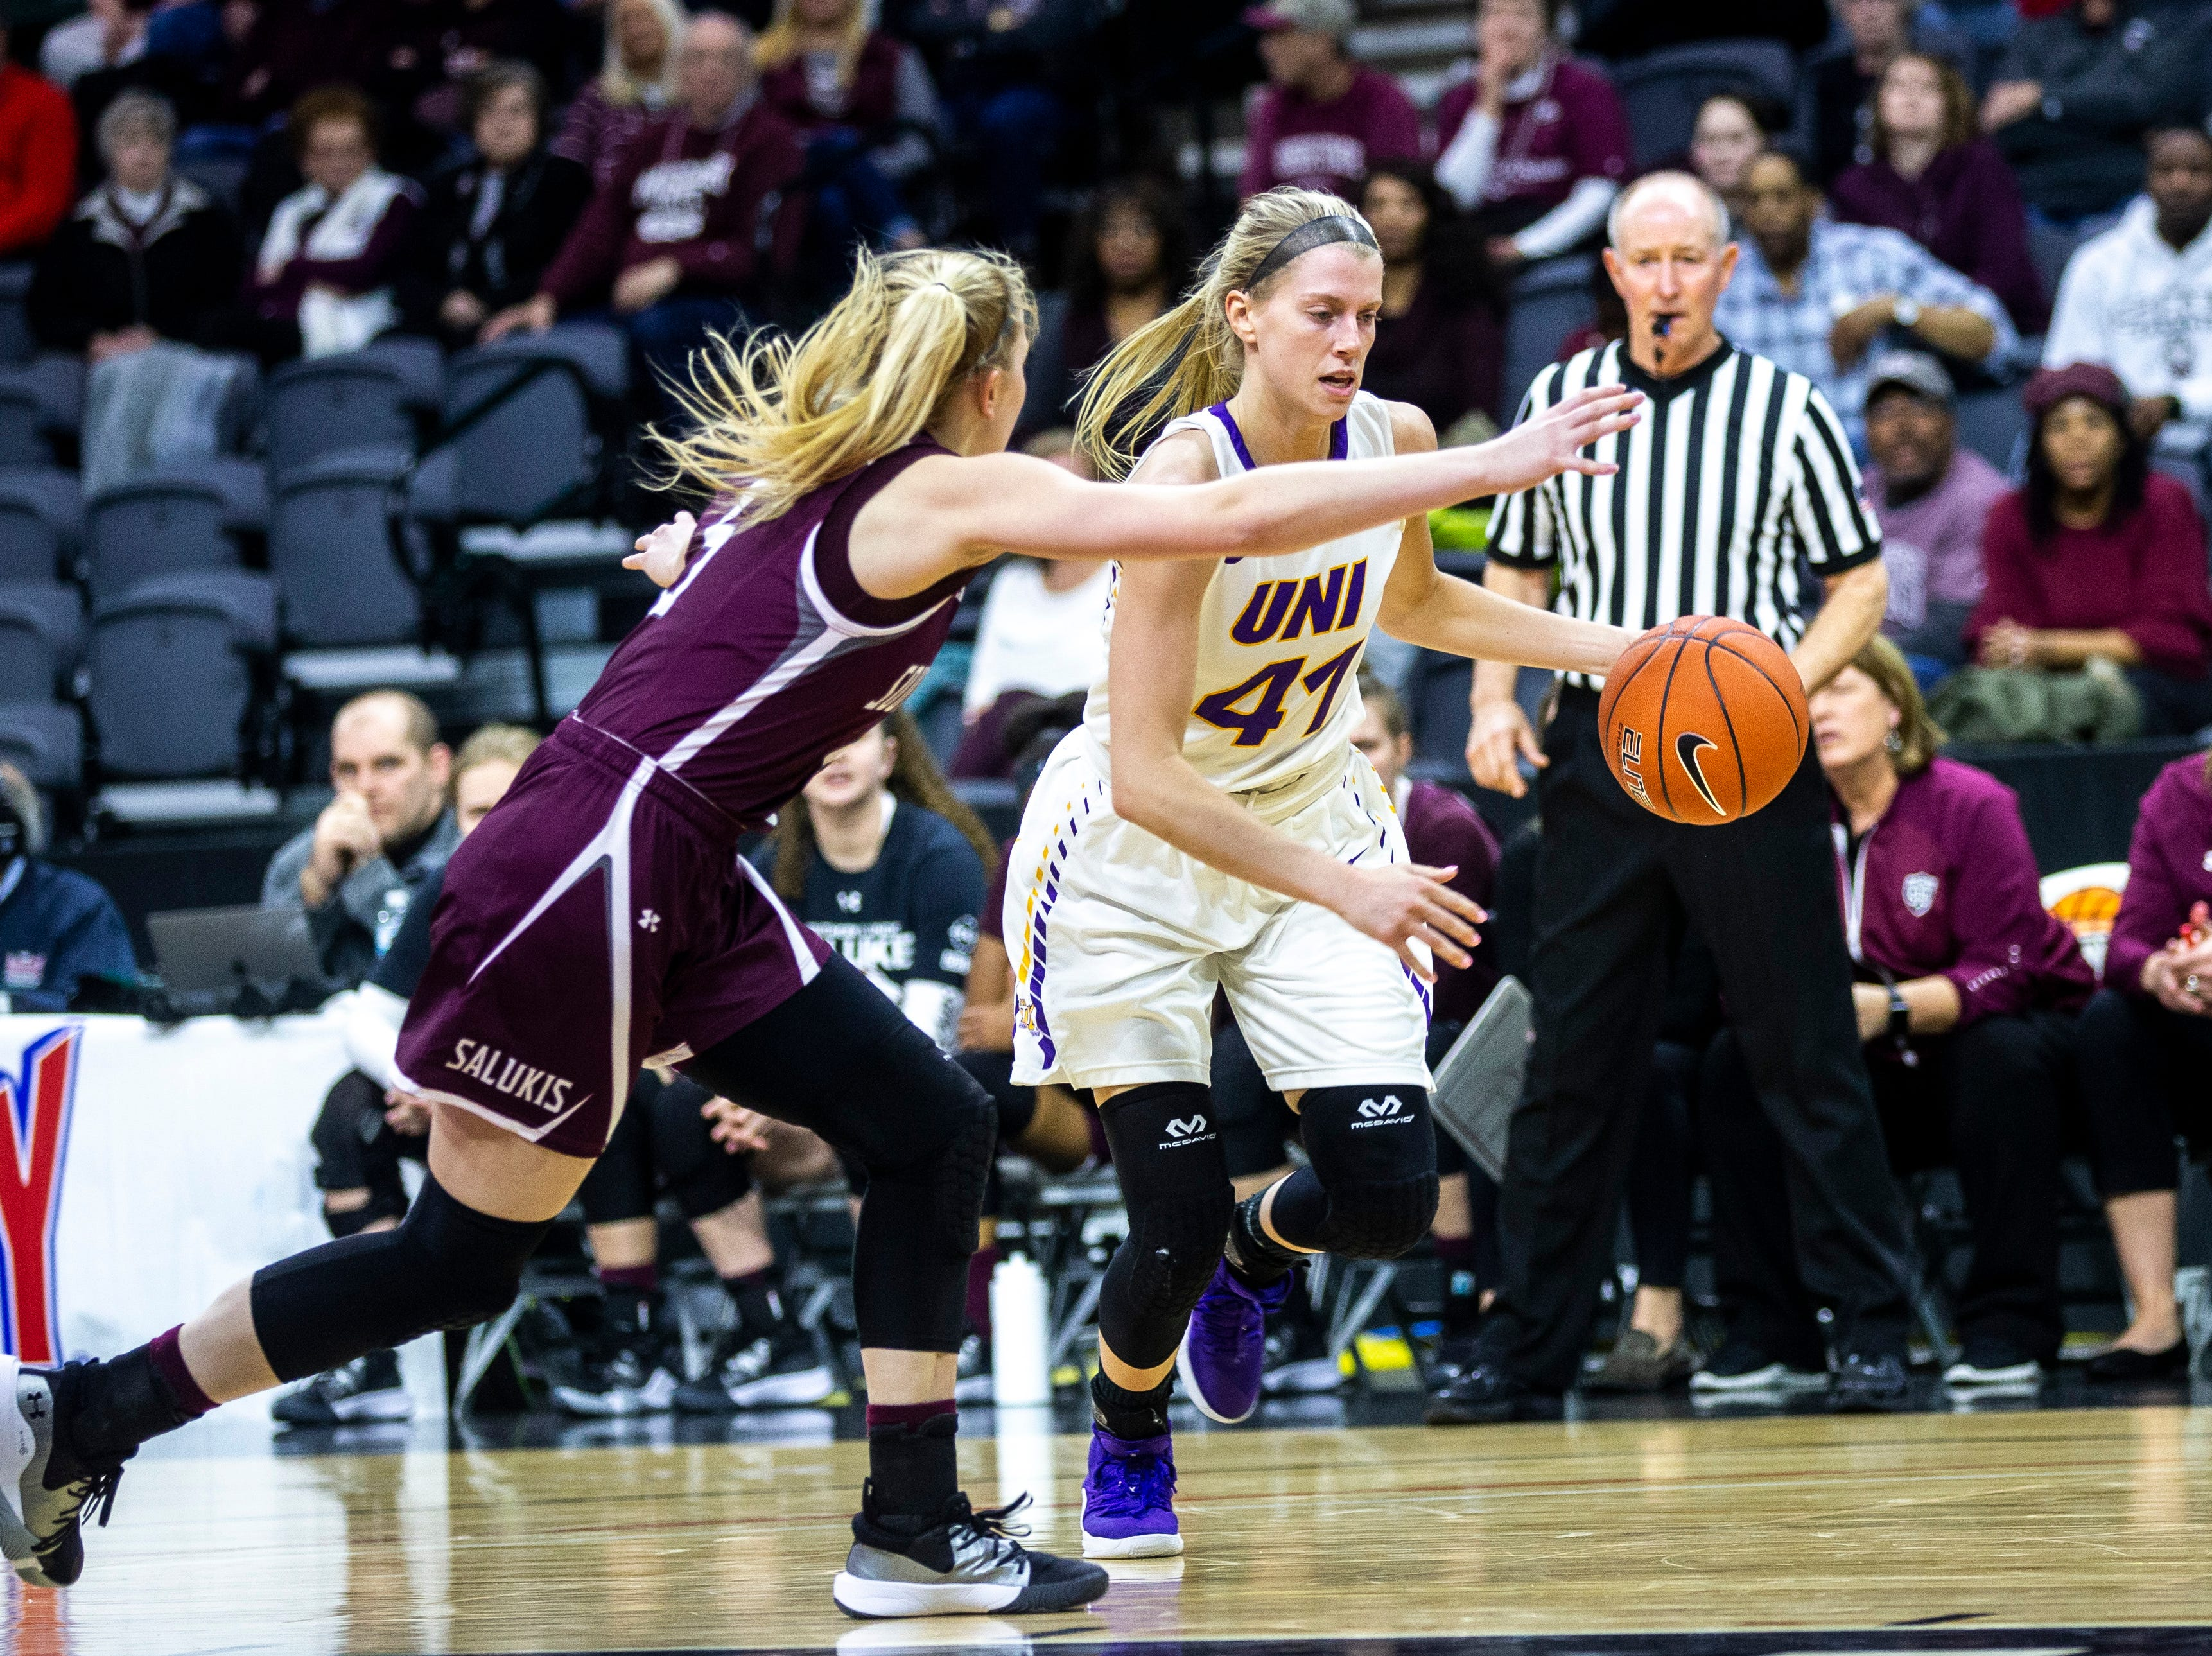 Northern Iowa guard Abby Gerrits (41) takes the ball up court during a NCAA Missouri Valley Conference women's basketball quarterfinal tournament game, Friday, March 15, 2019, at the TaxSlayer Center in Moline, Illinois.